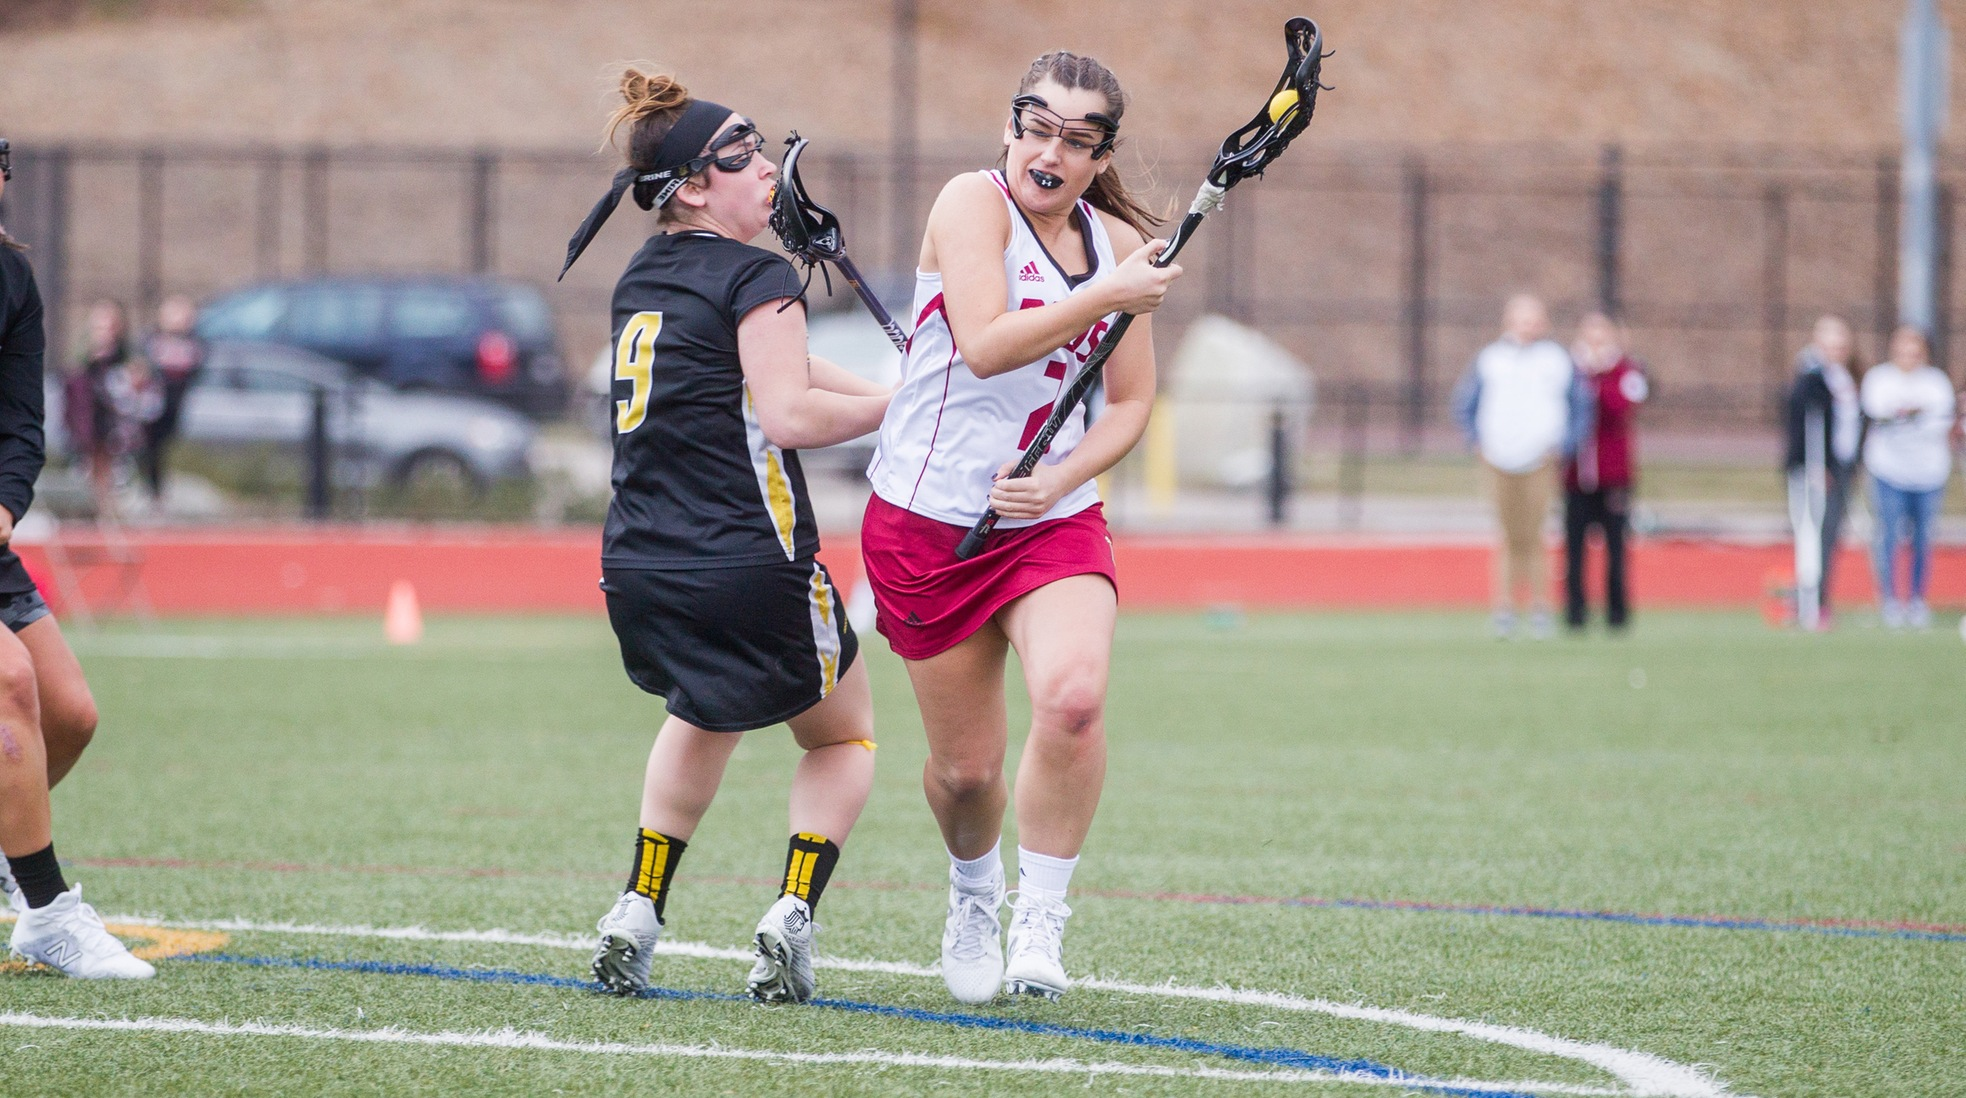 Big Second Half Lifts Women's Lacrosse Over Rivier